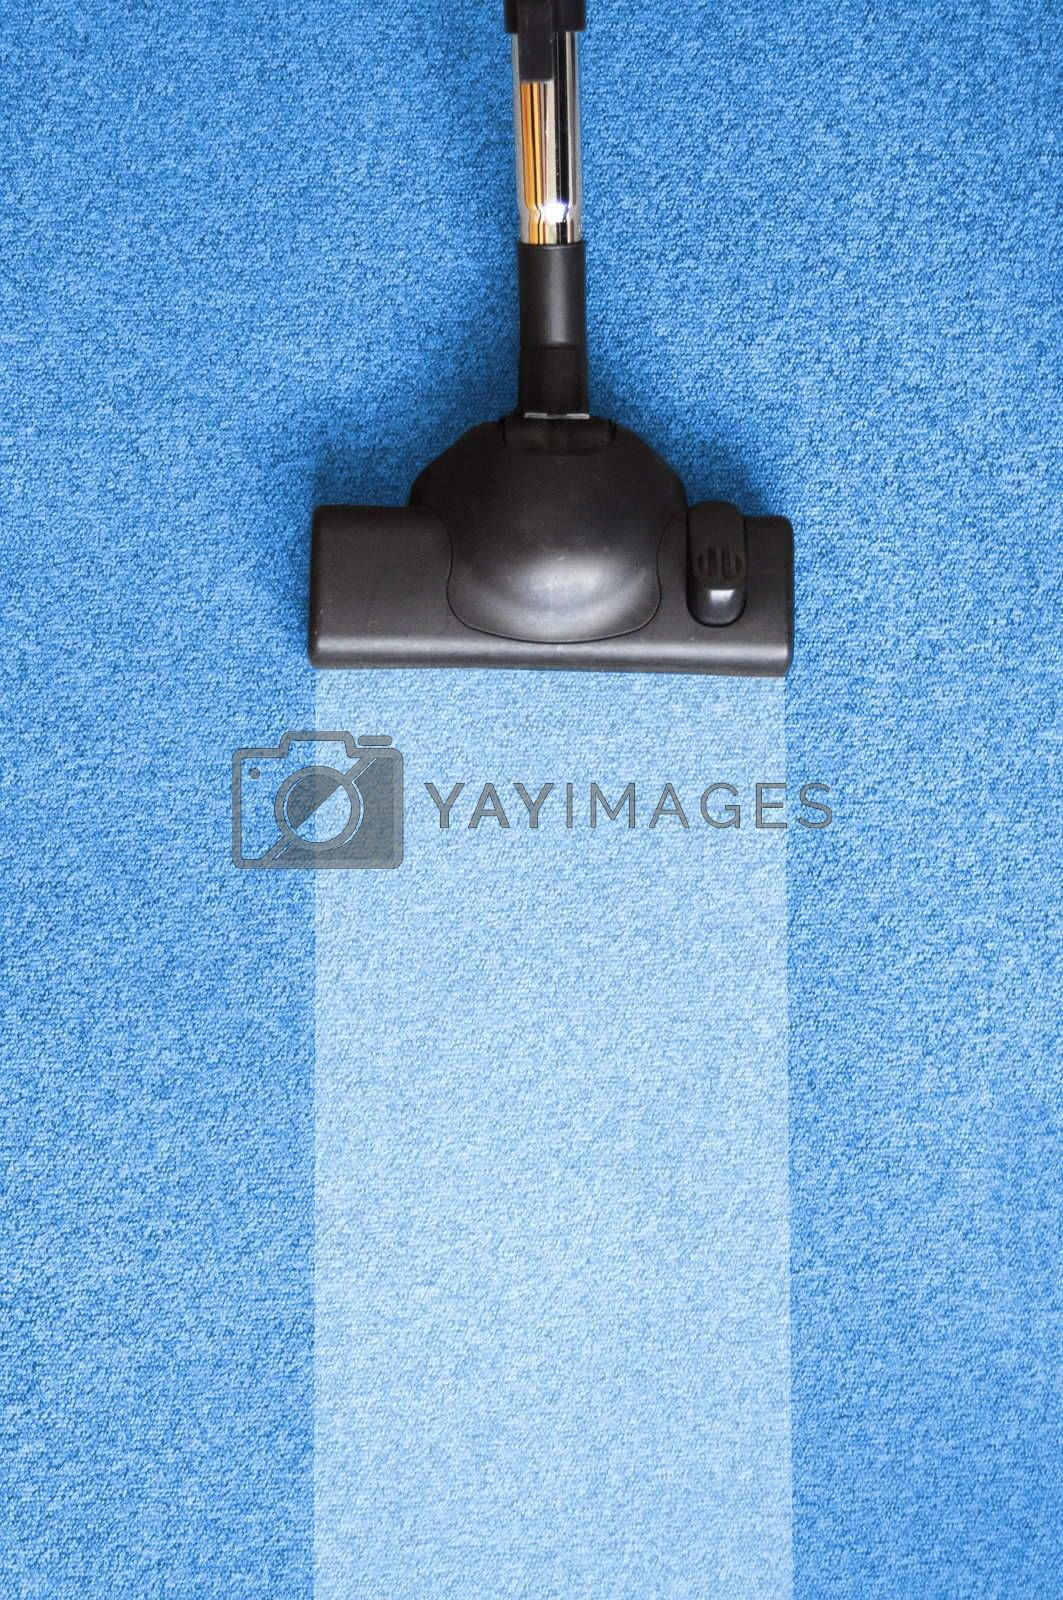 vacuum cleaner and copyspace for text message